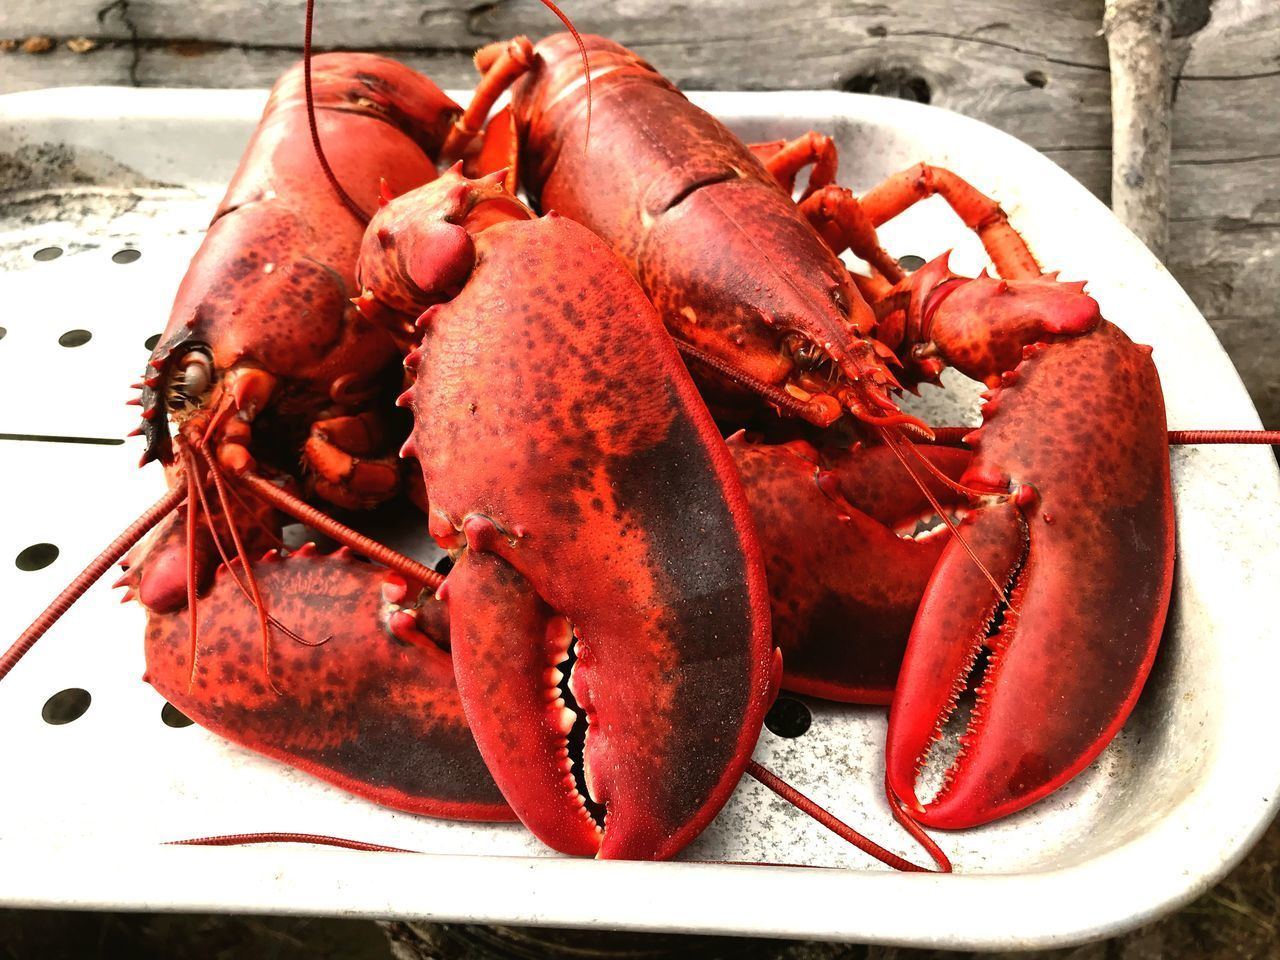 crustacean, seafood, food, food and drink, lobster, freshness, healthy eating, close-up, wellbeing, red, plate, no people, claw, day, still life, raw food, animal, cooked, crab, ready-to-eat, marine, dinner